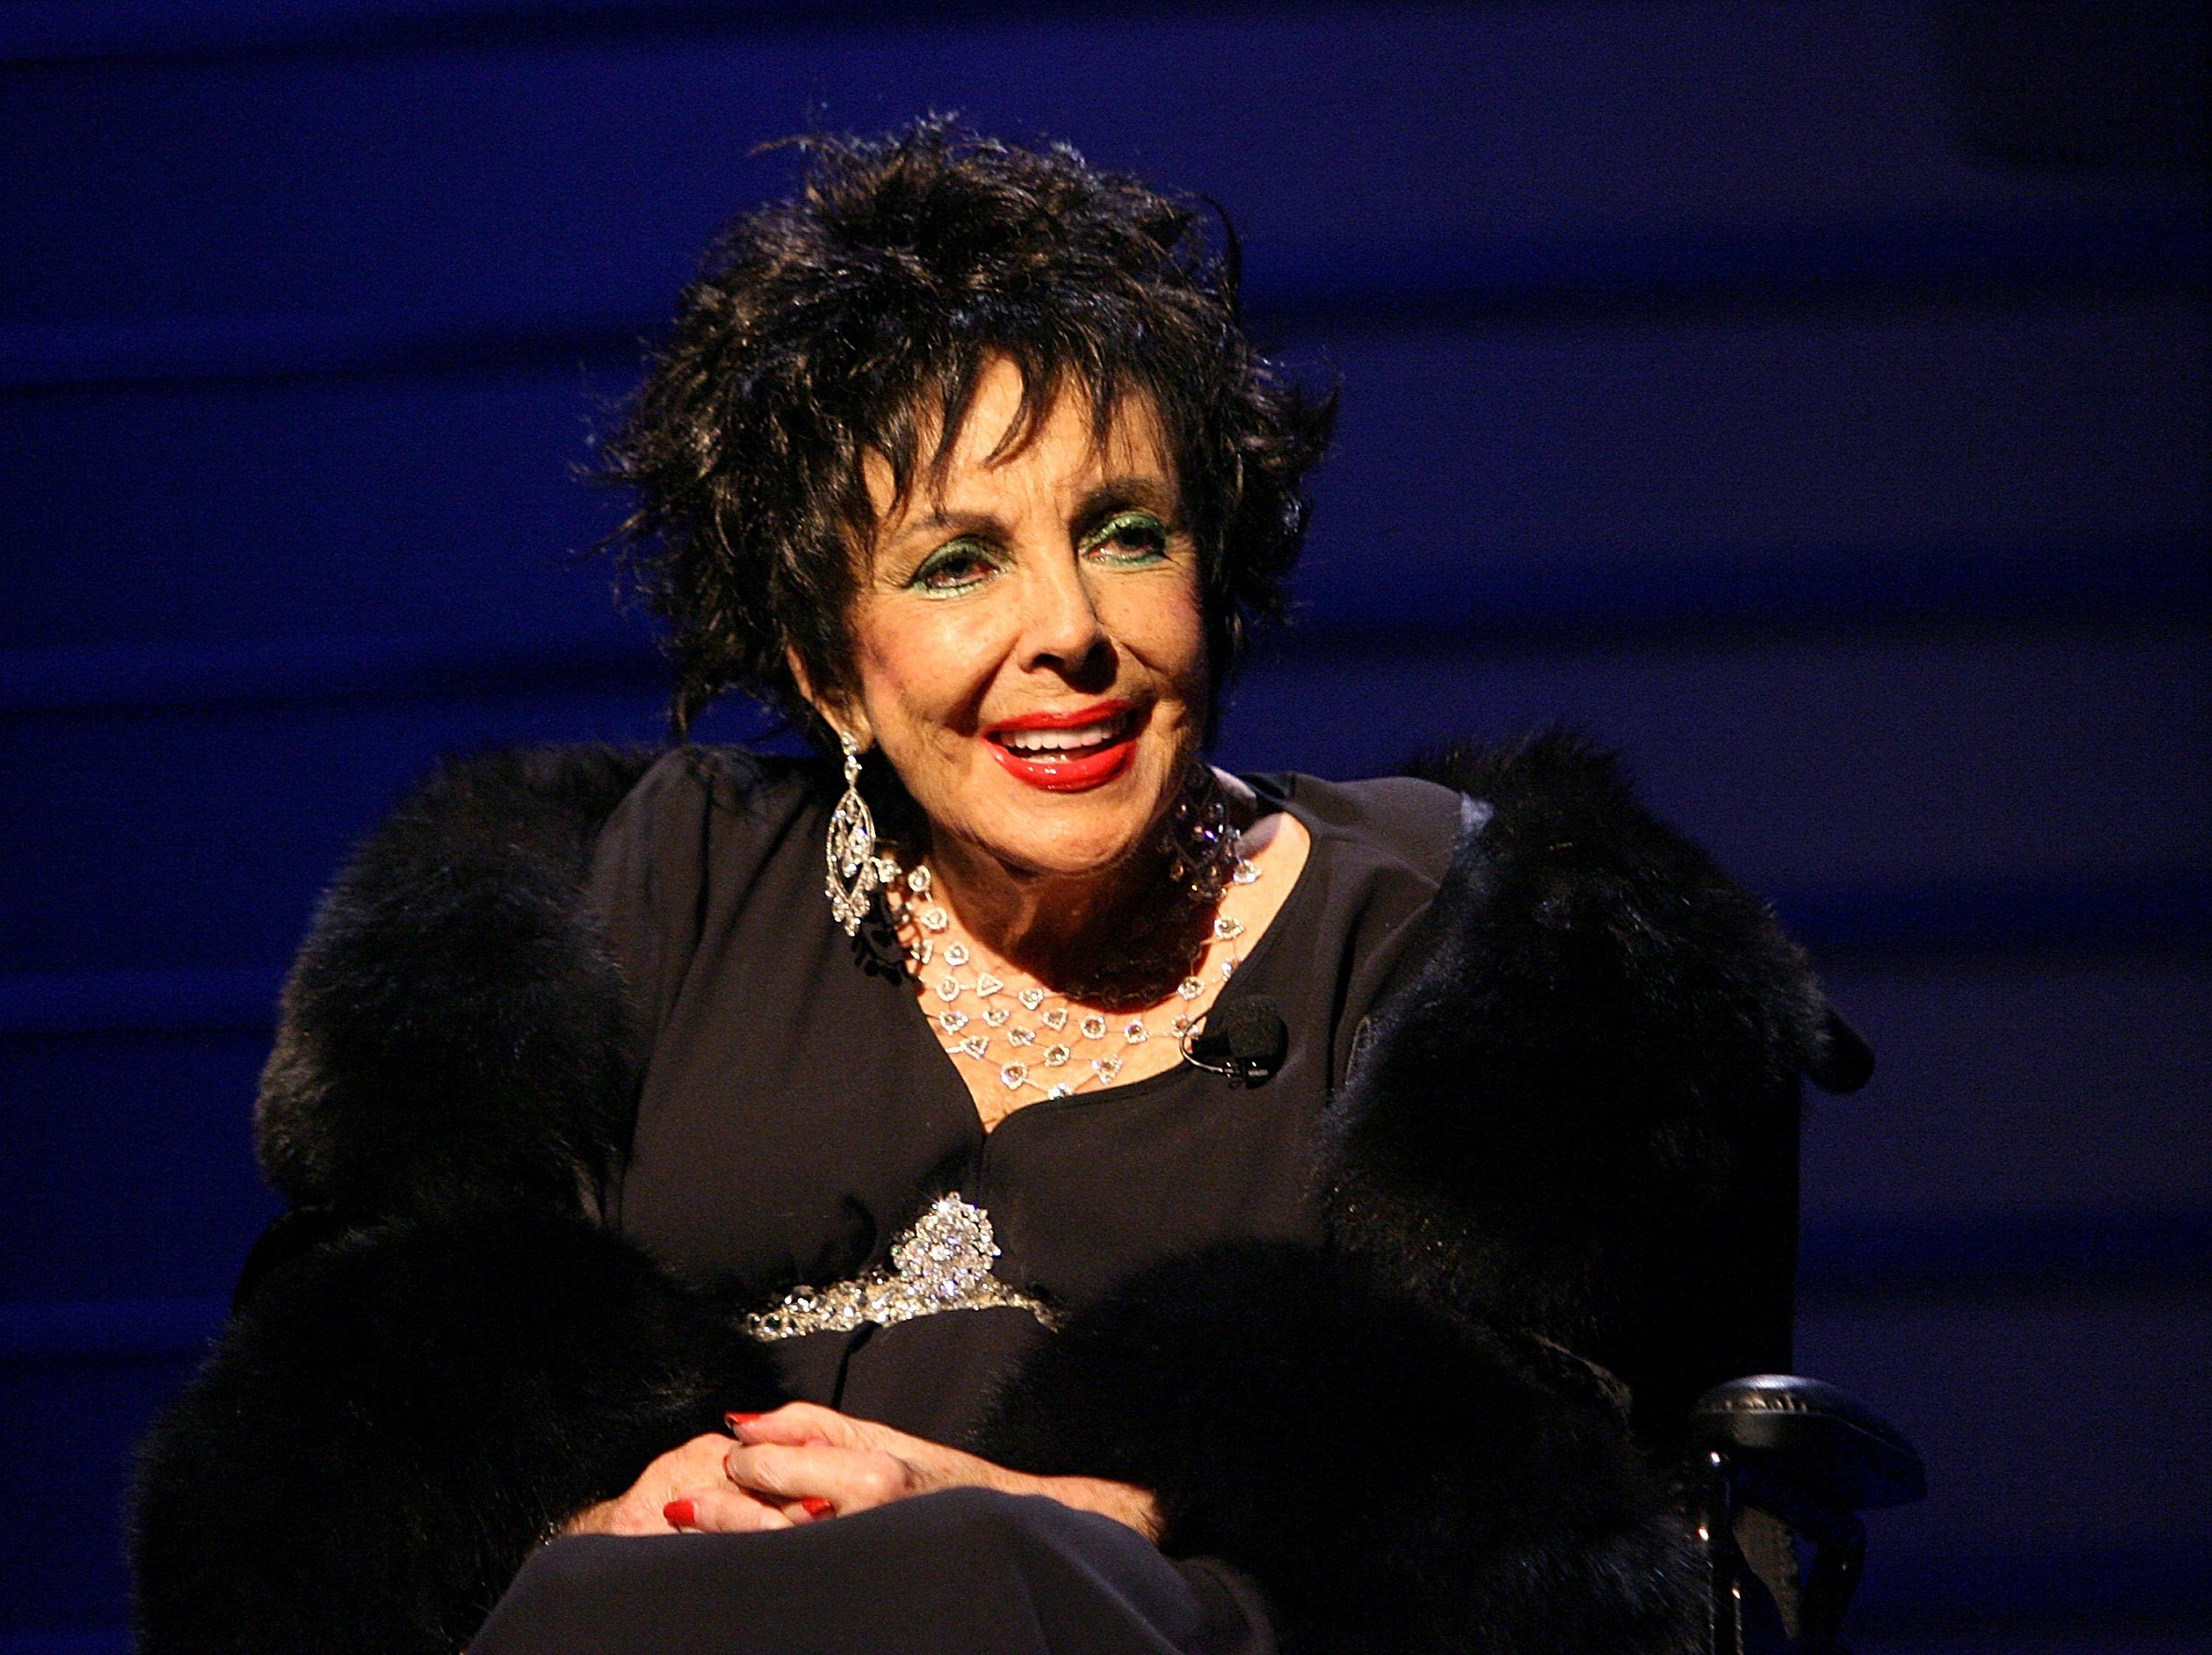 Elizabeth Taylor attends Macy's Passport Gala in Santa Monica, California on September 26, 2008   Photo: Getty Images